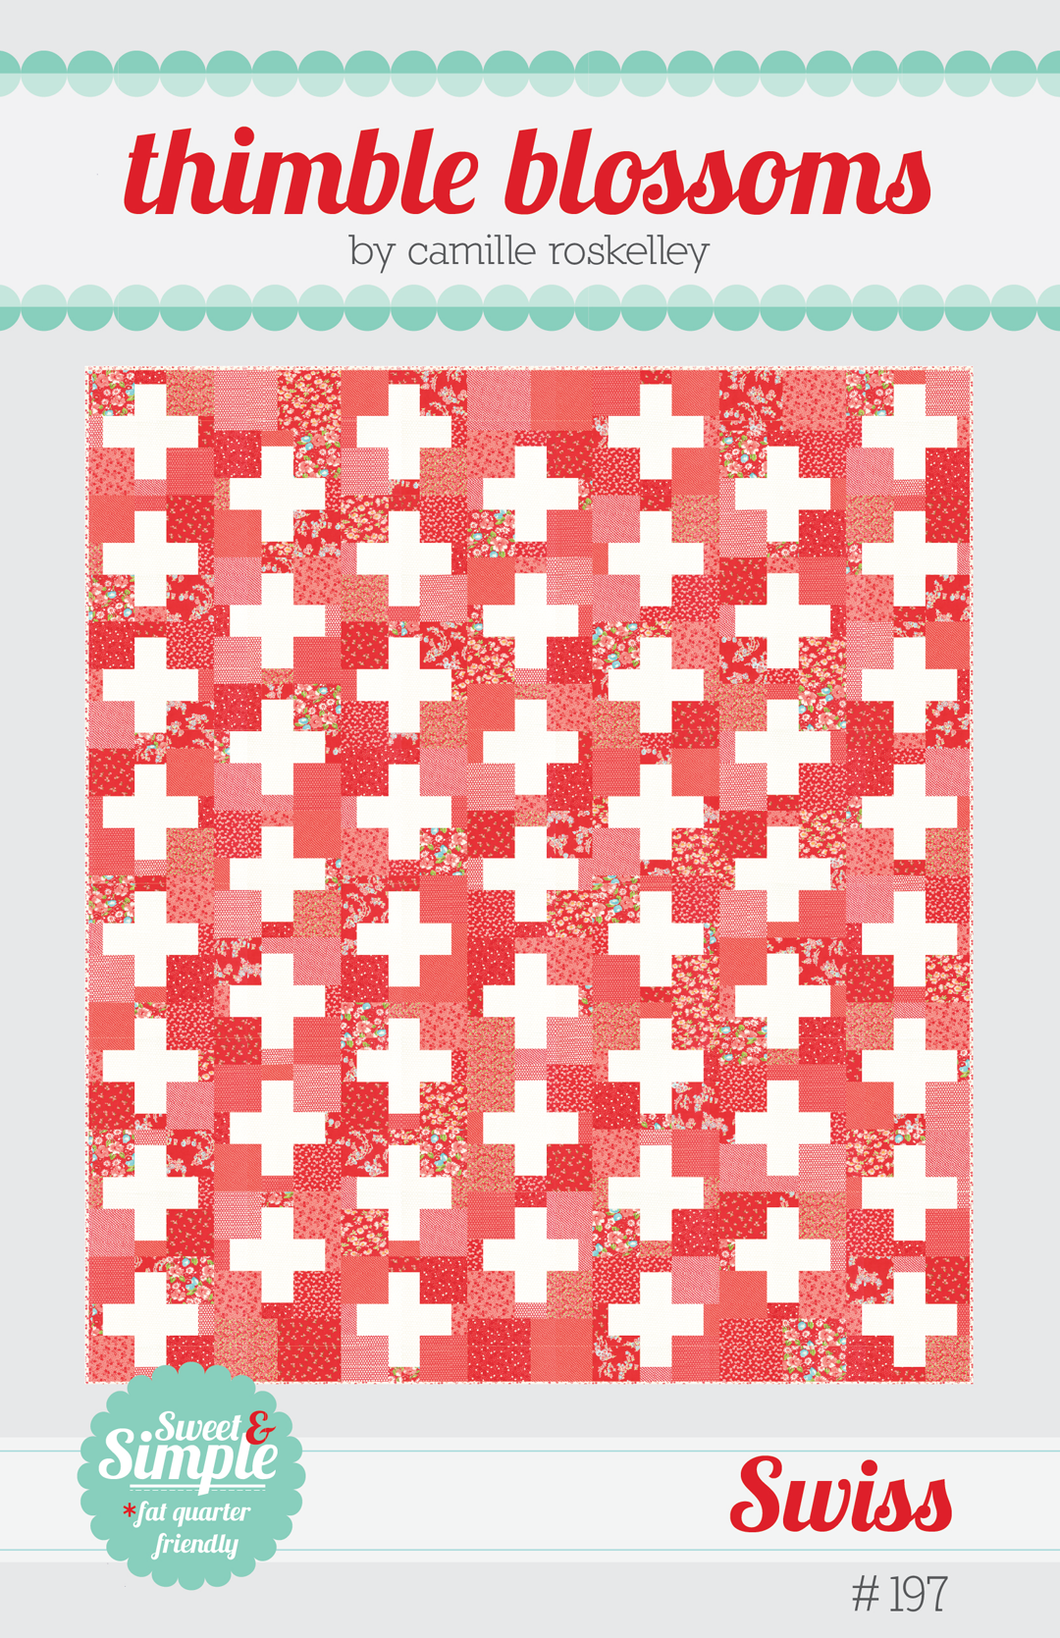 Swiss - PAPER pattern